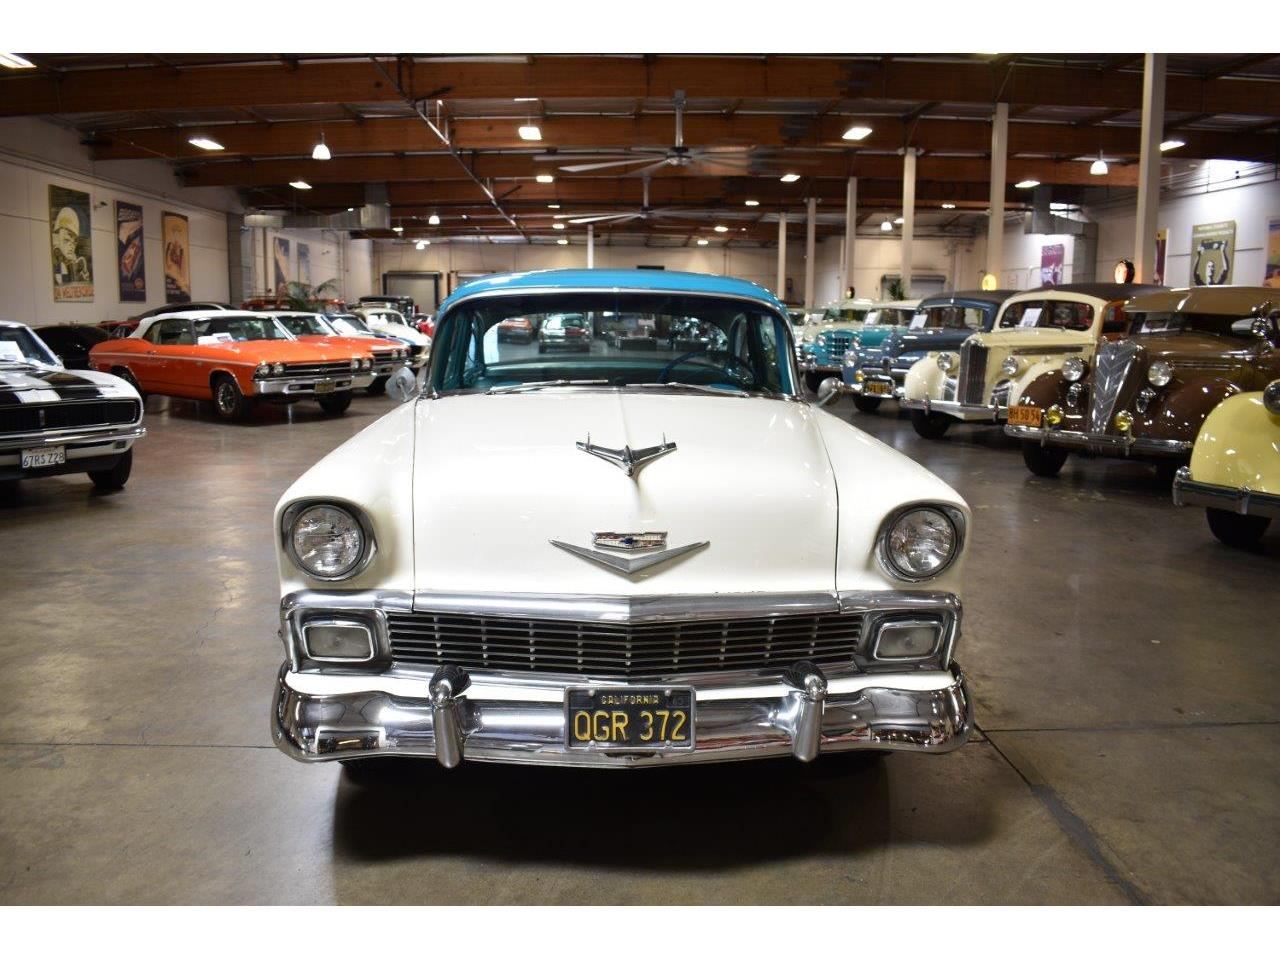 Large Picture of 1956 Chevrolet Bel Air located in California - $19,900.00 - Q5GK